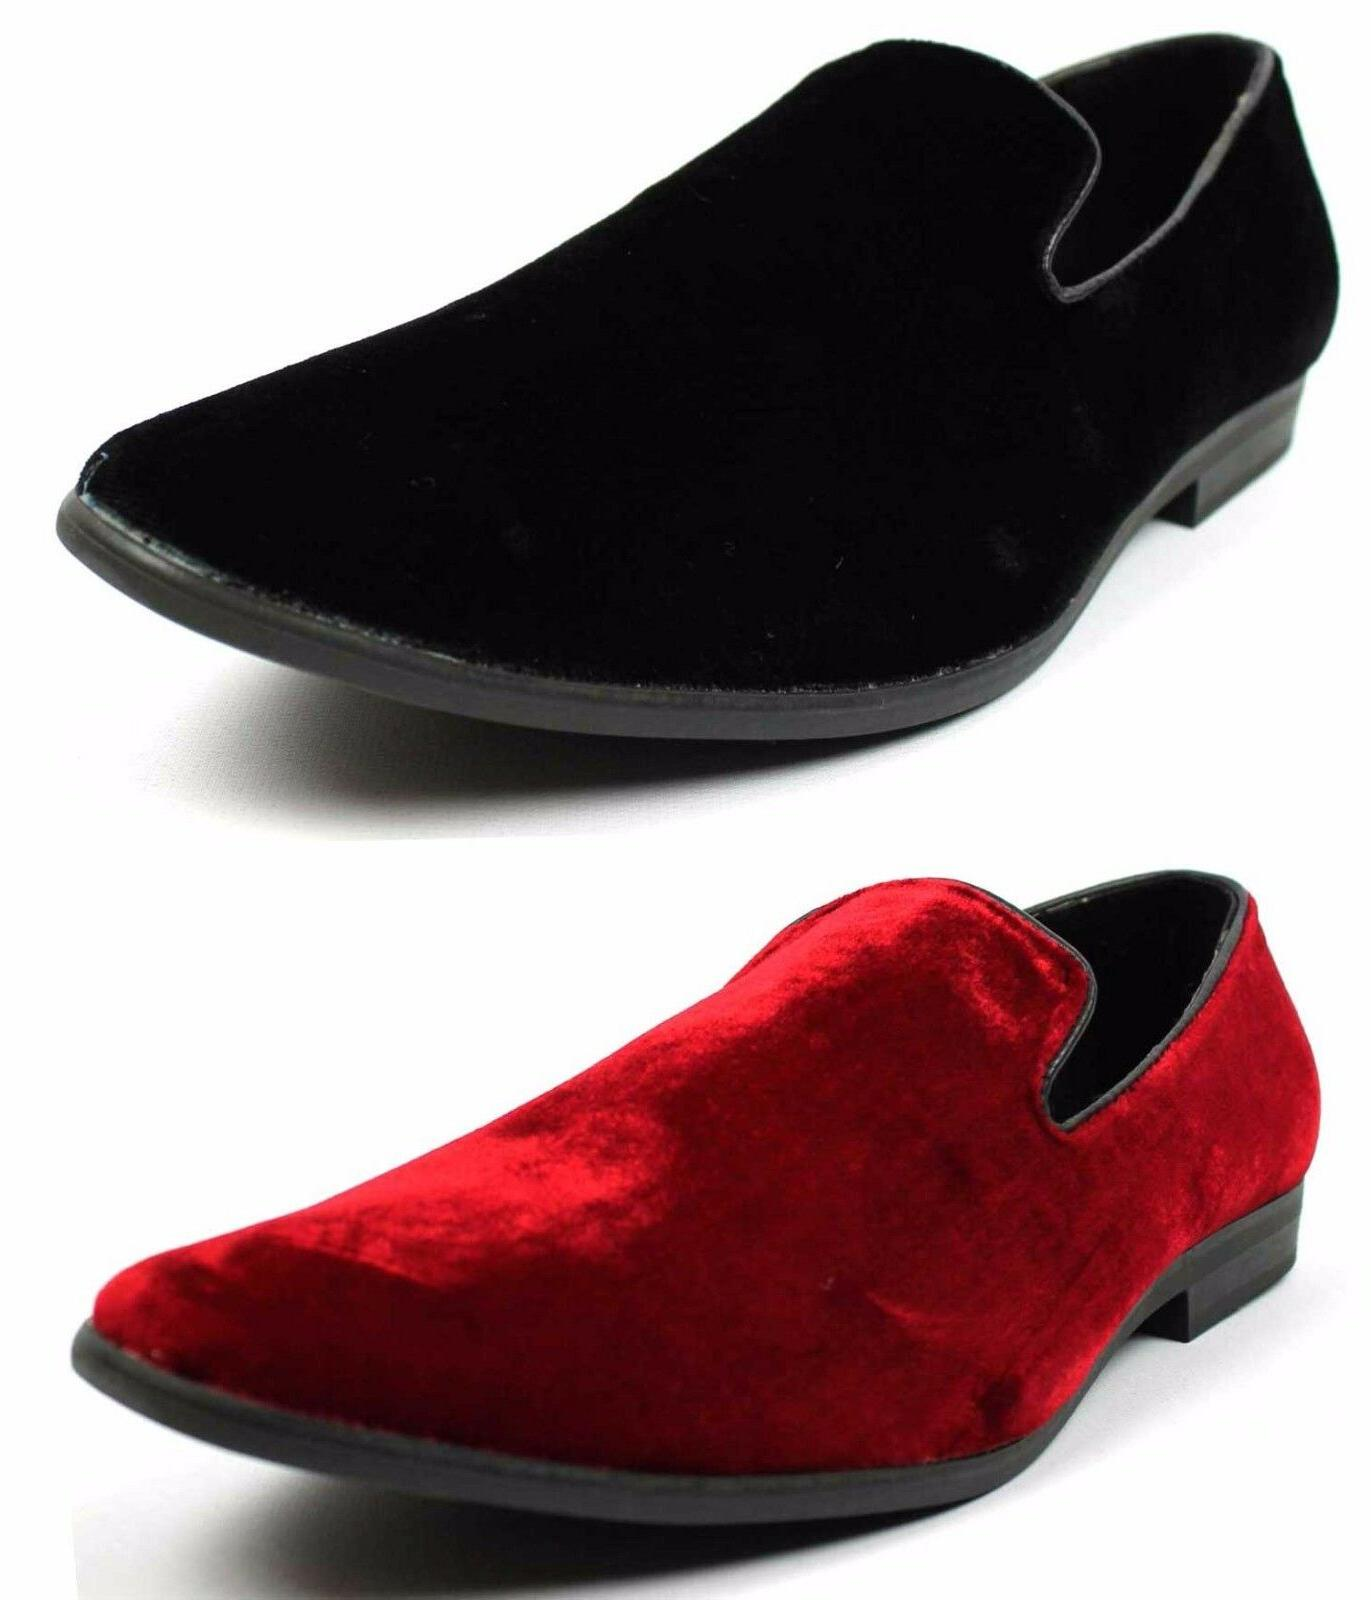 new mens dress shoes slip on loafers